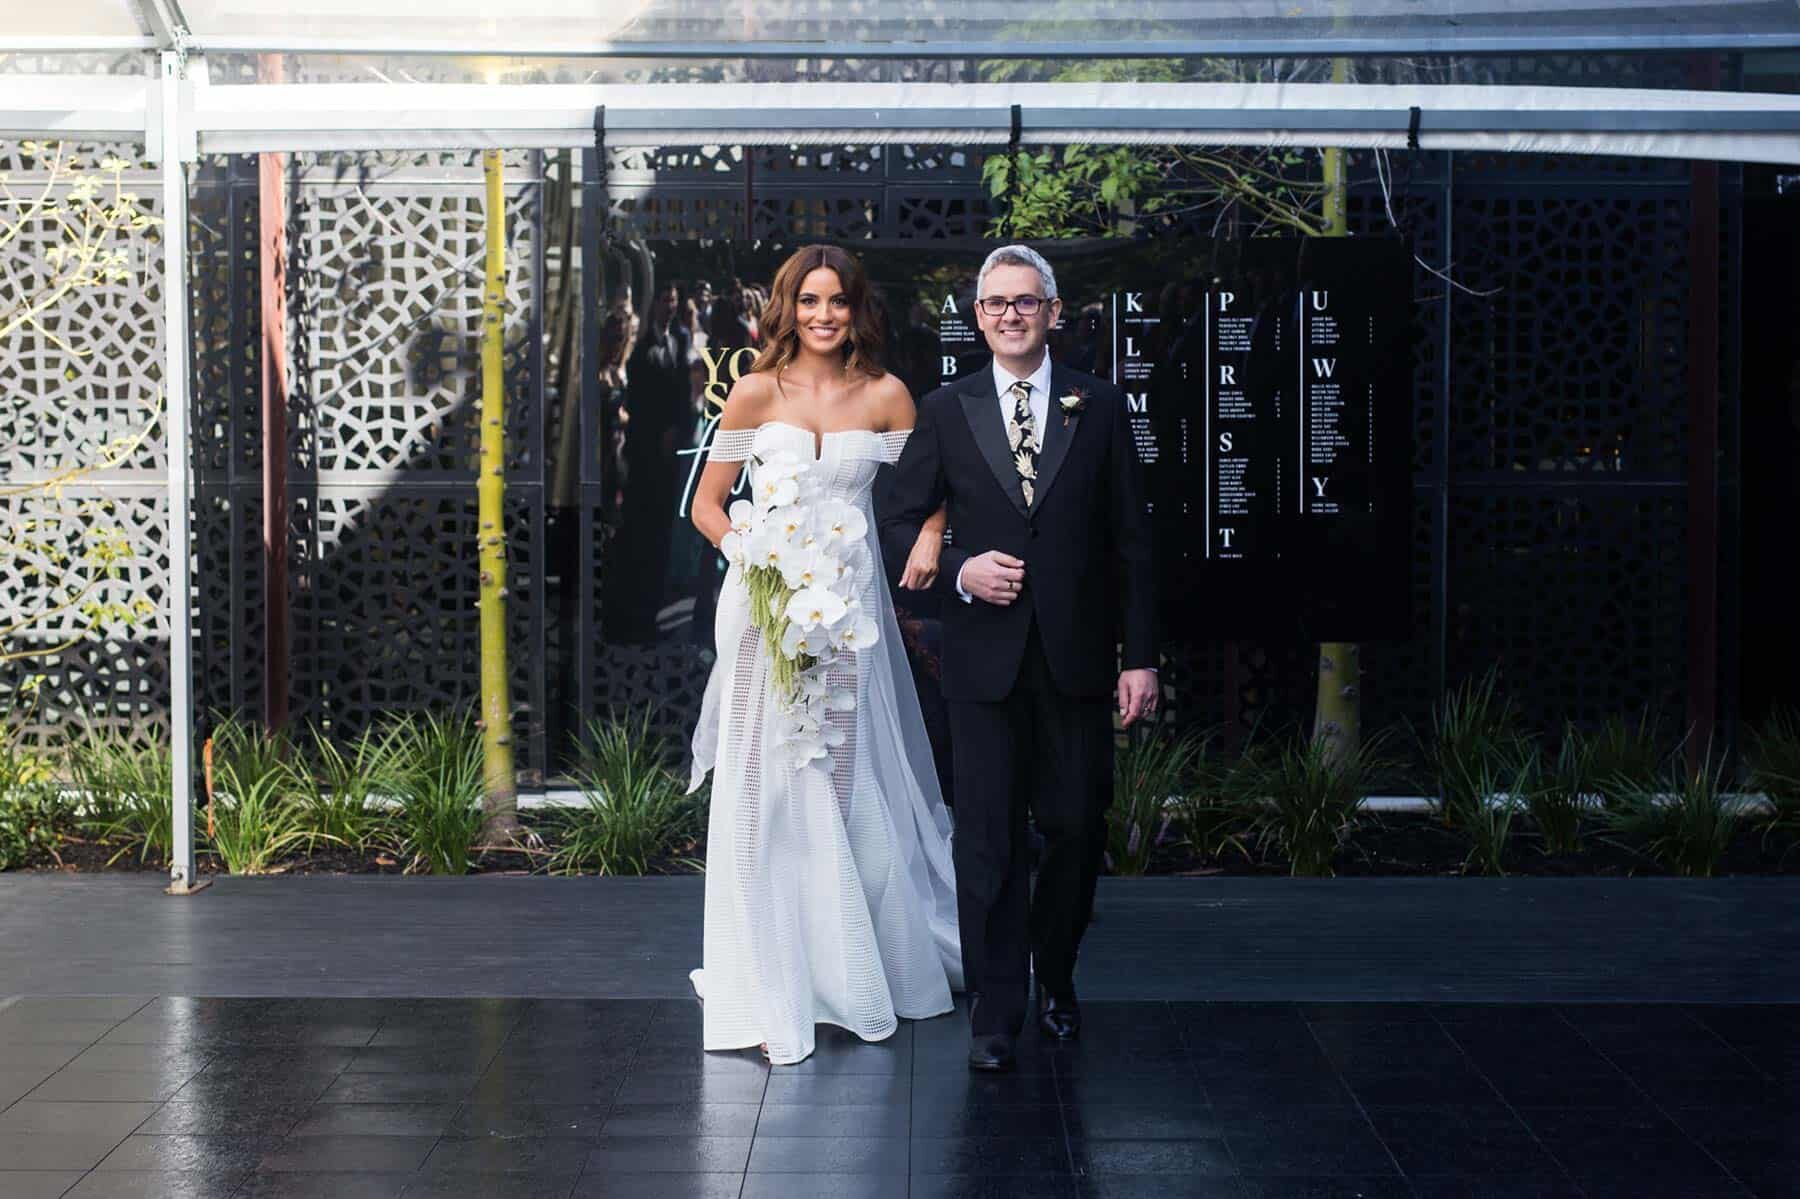 modern Melbourne wedding at St Kilda venue The Prince Hotel